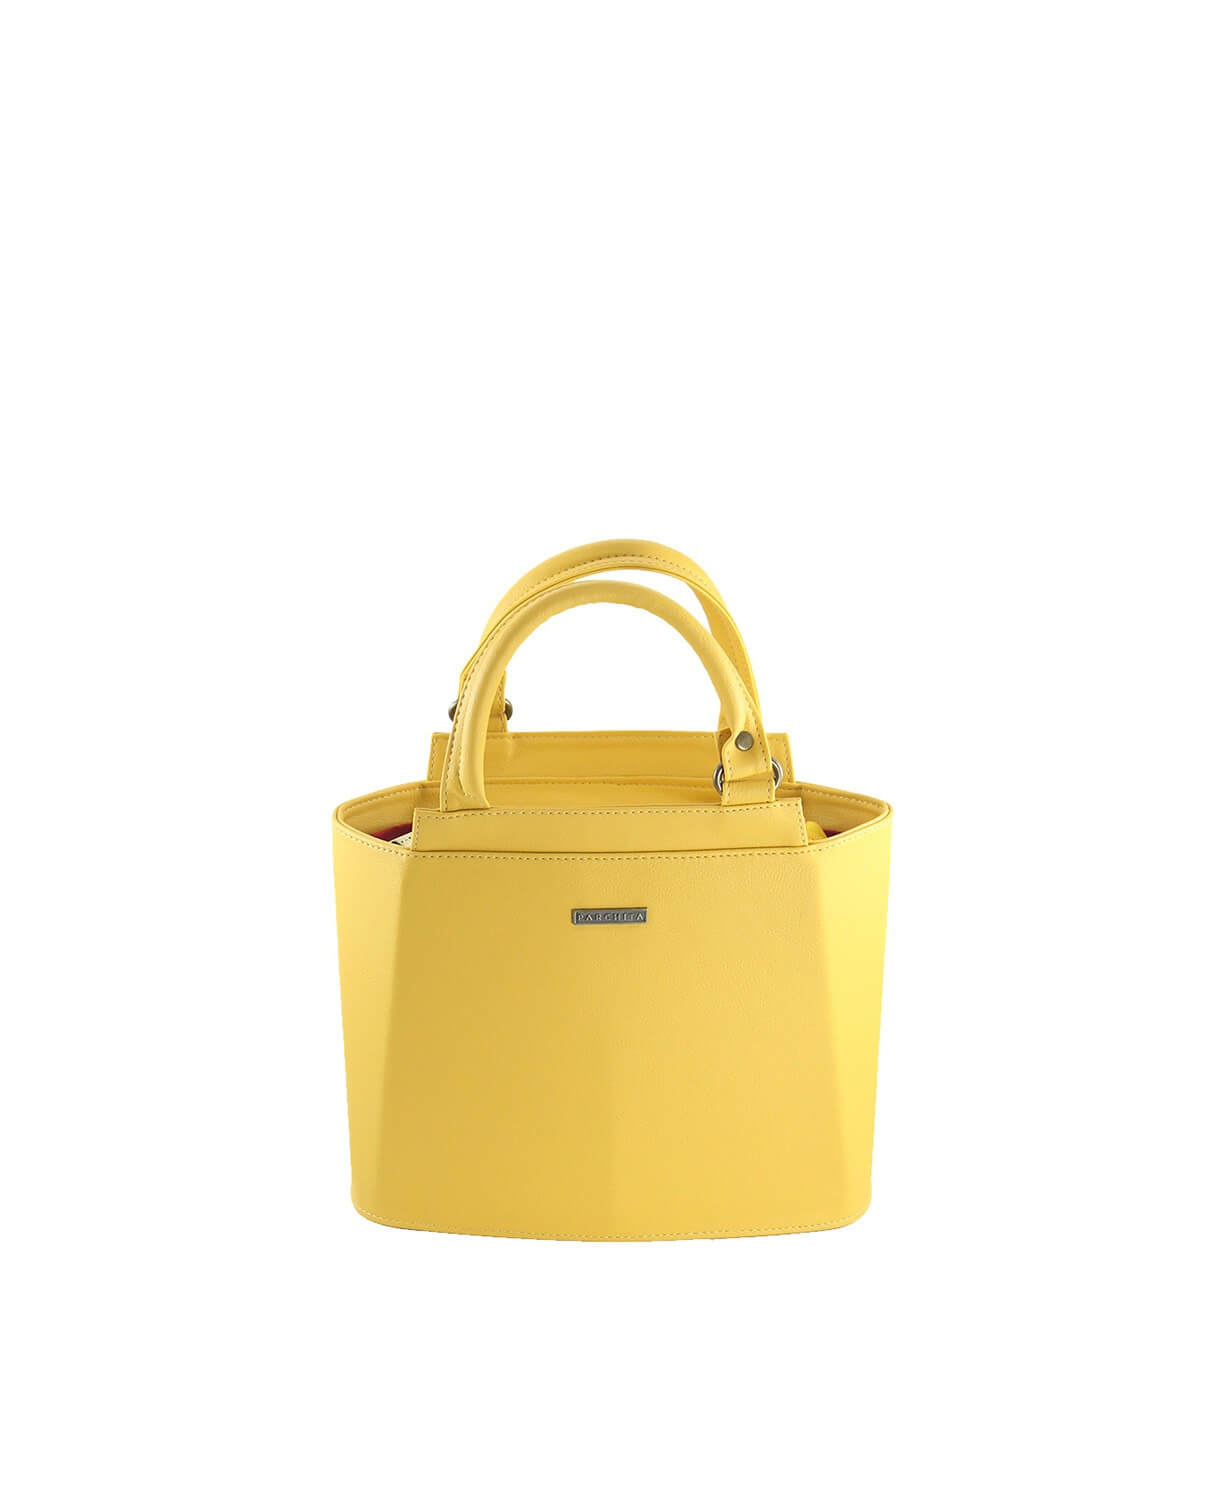 Cartera Mini Piramidal Amarillo